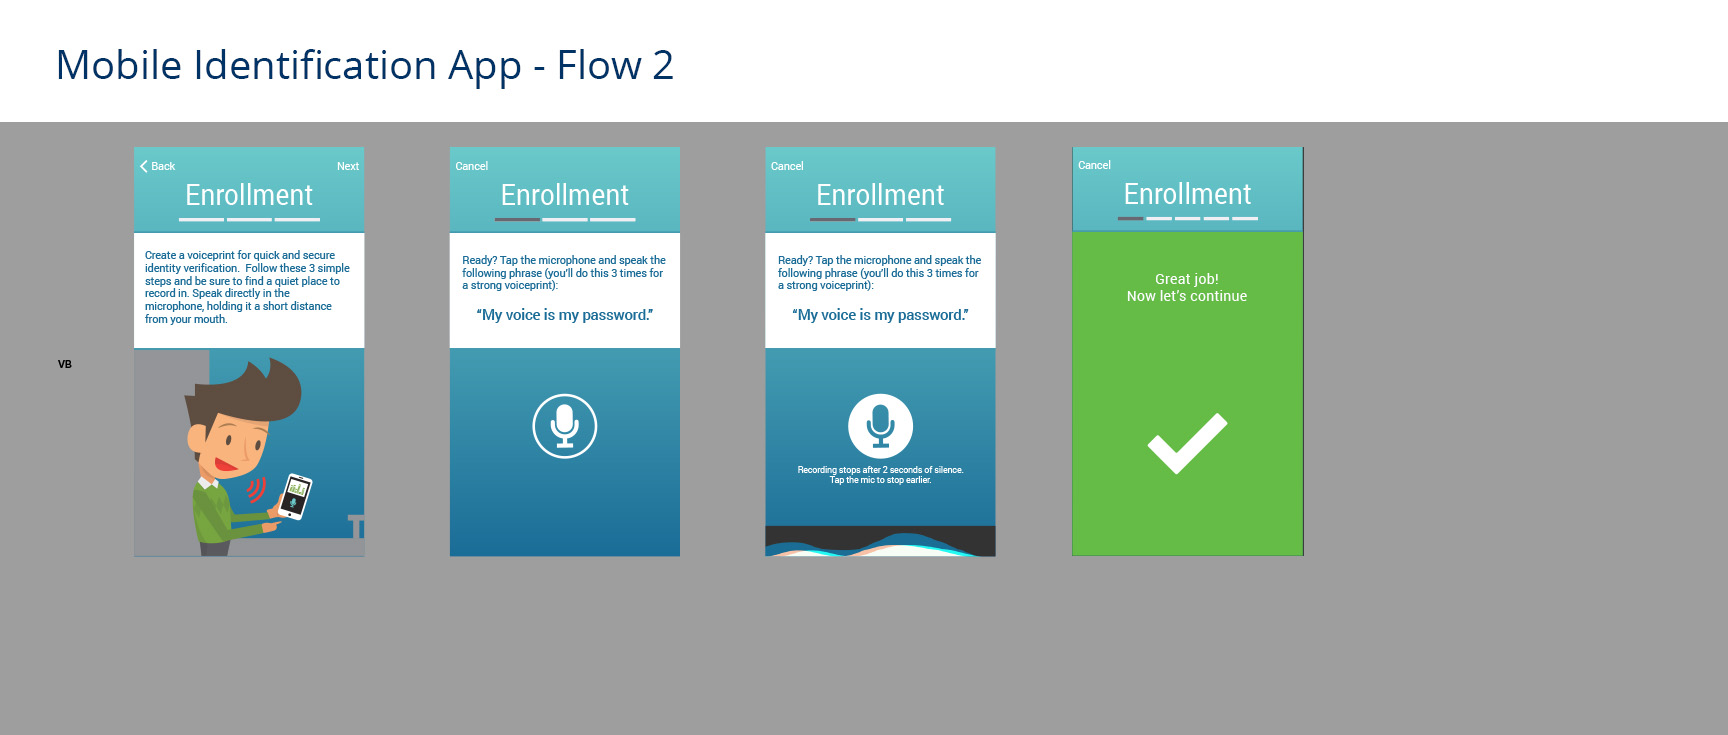 2nd screen for user journey through enrollment process